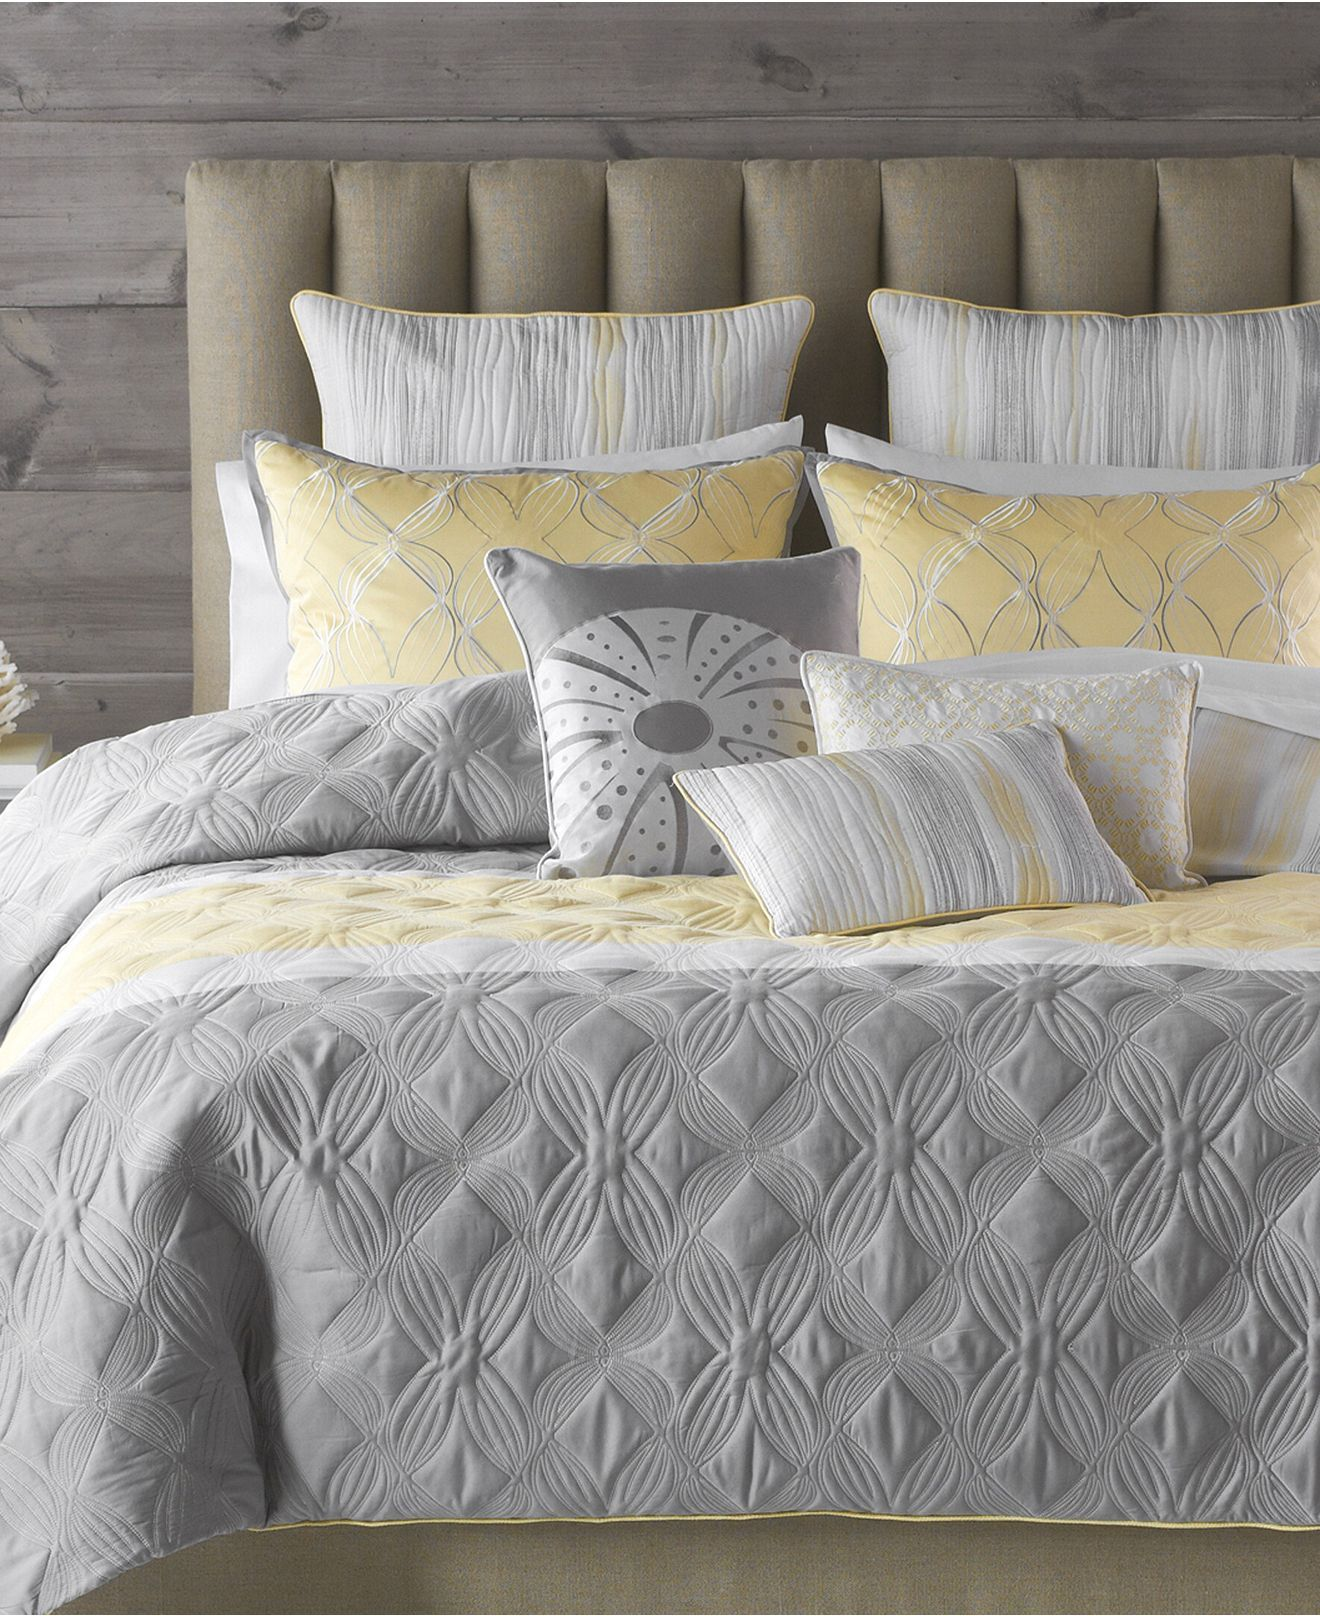 Bryan Keith Bedding Tango 9 Piece forter Sets Sale Bed in a